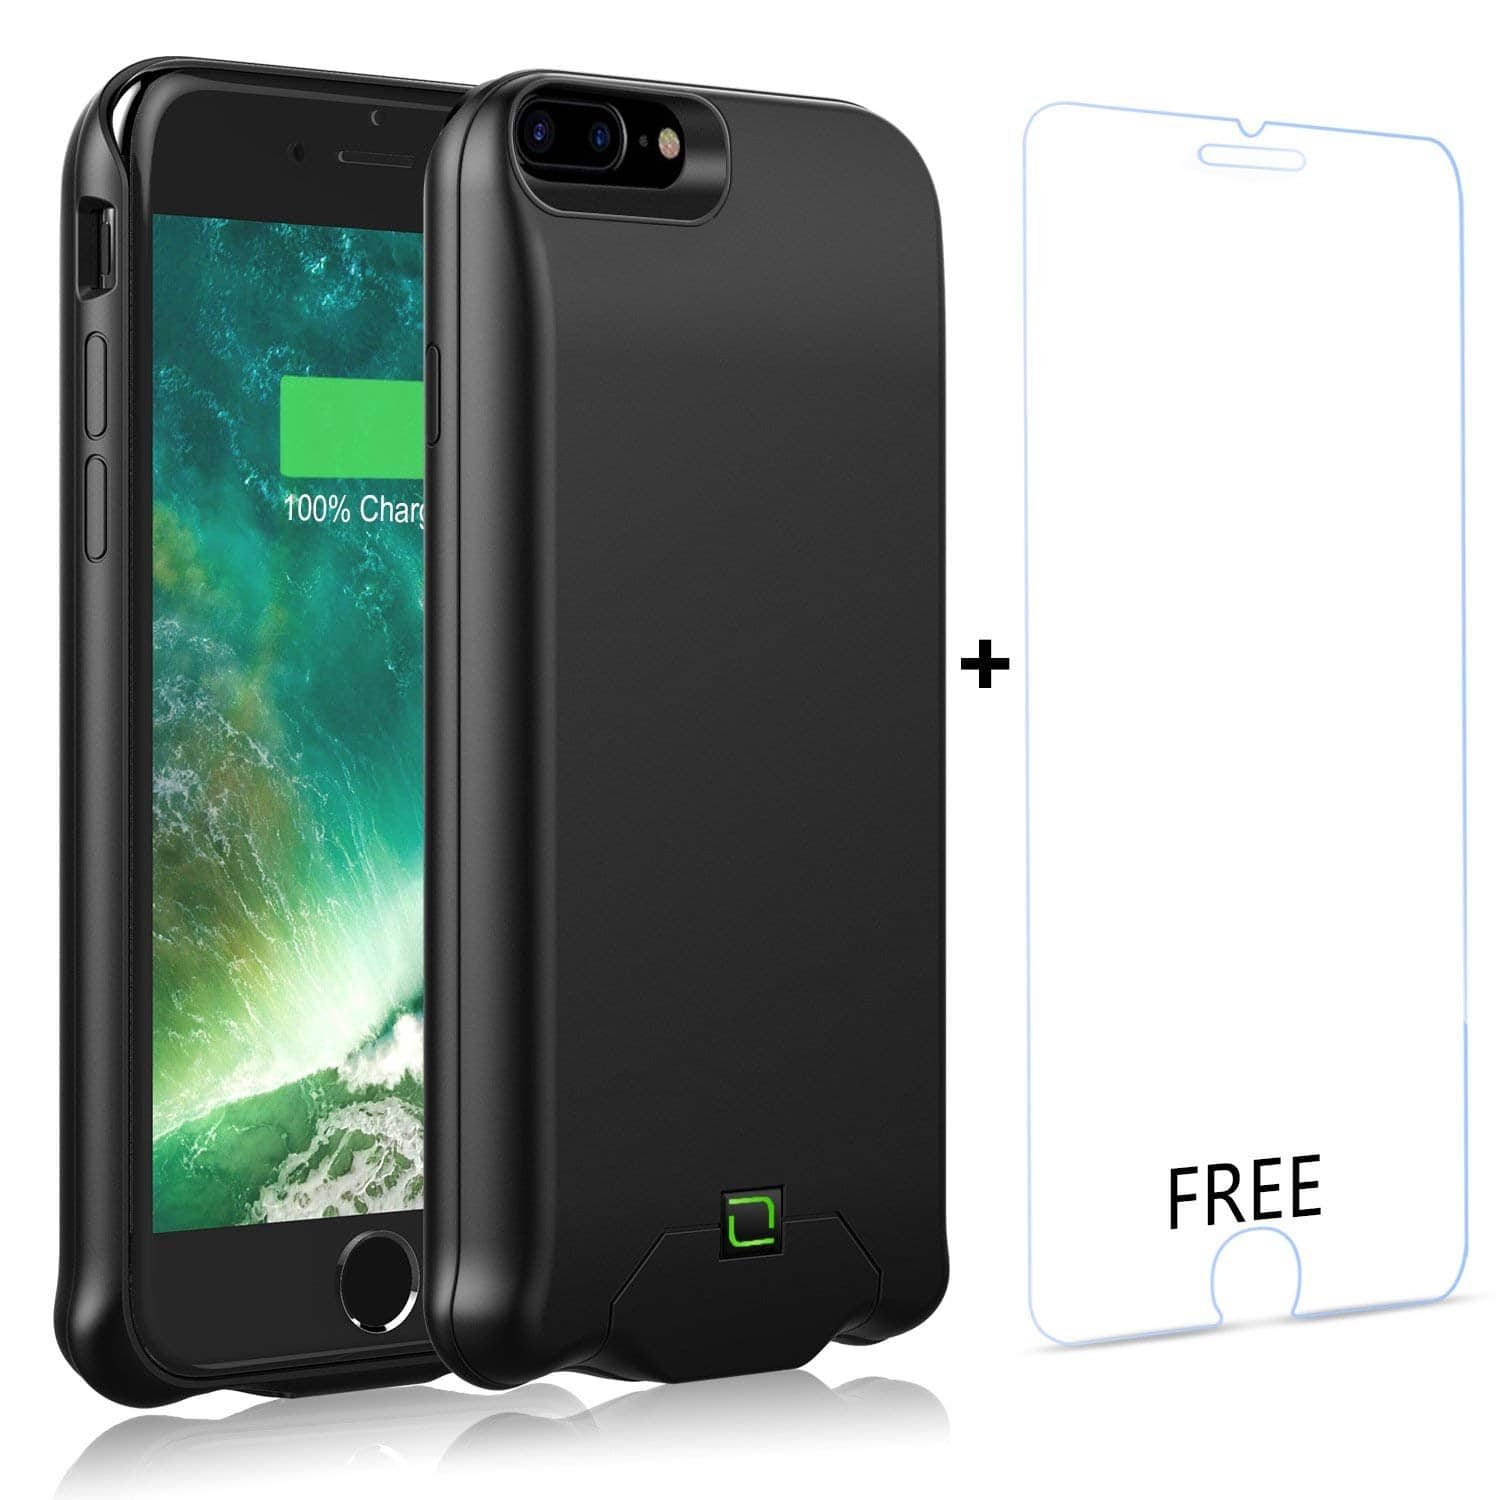 "7000mAh Portable Battery Charging Case for iPhone 8/7/6s/6 Plus w/ 5.5"" Tempered Glass Film $23.09"